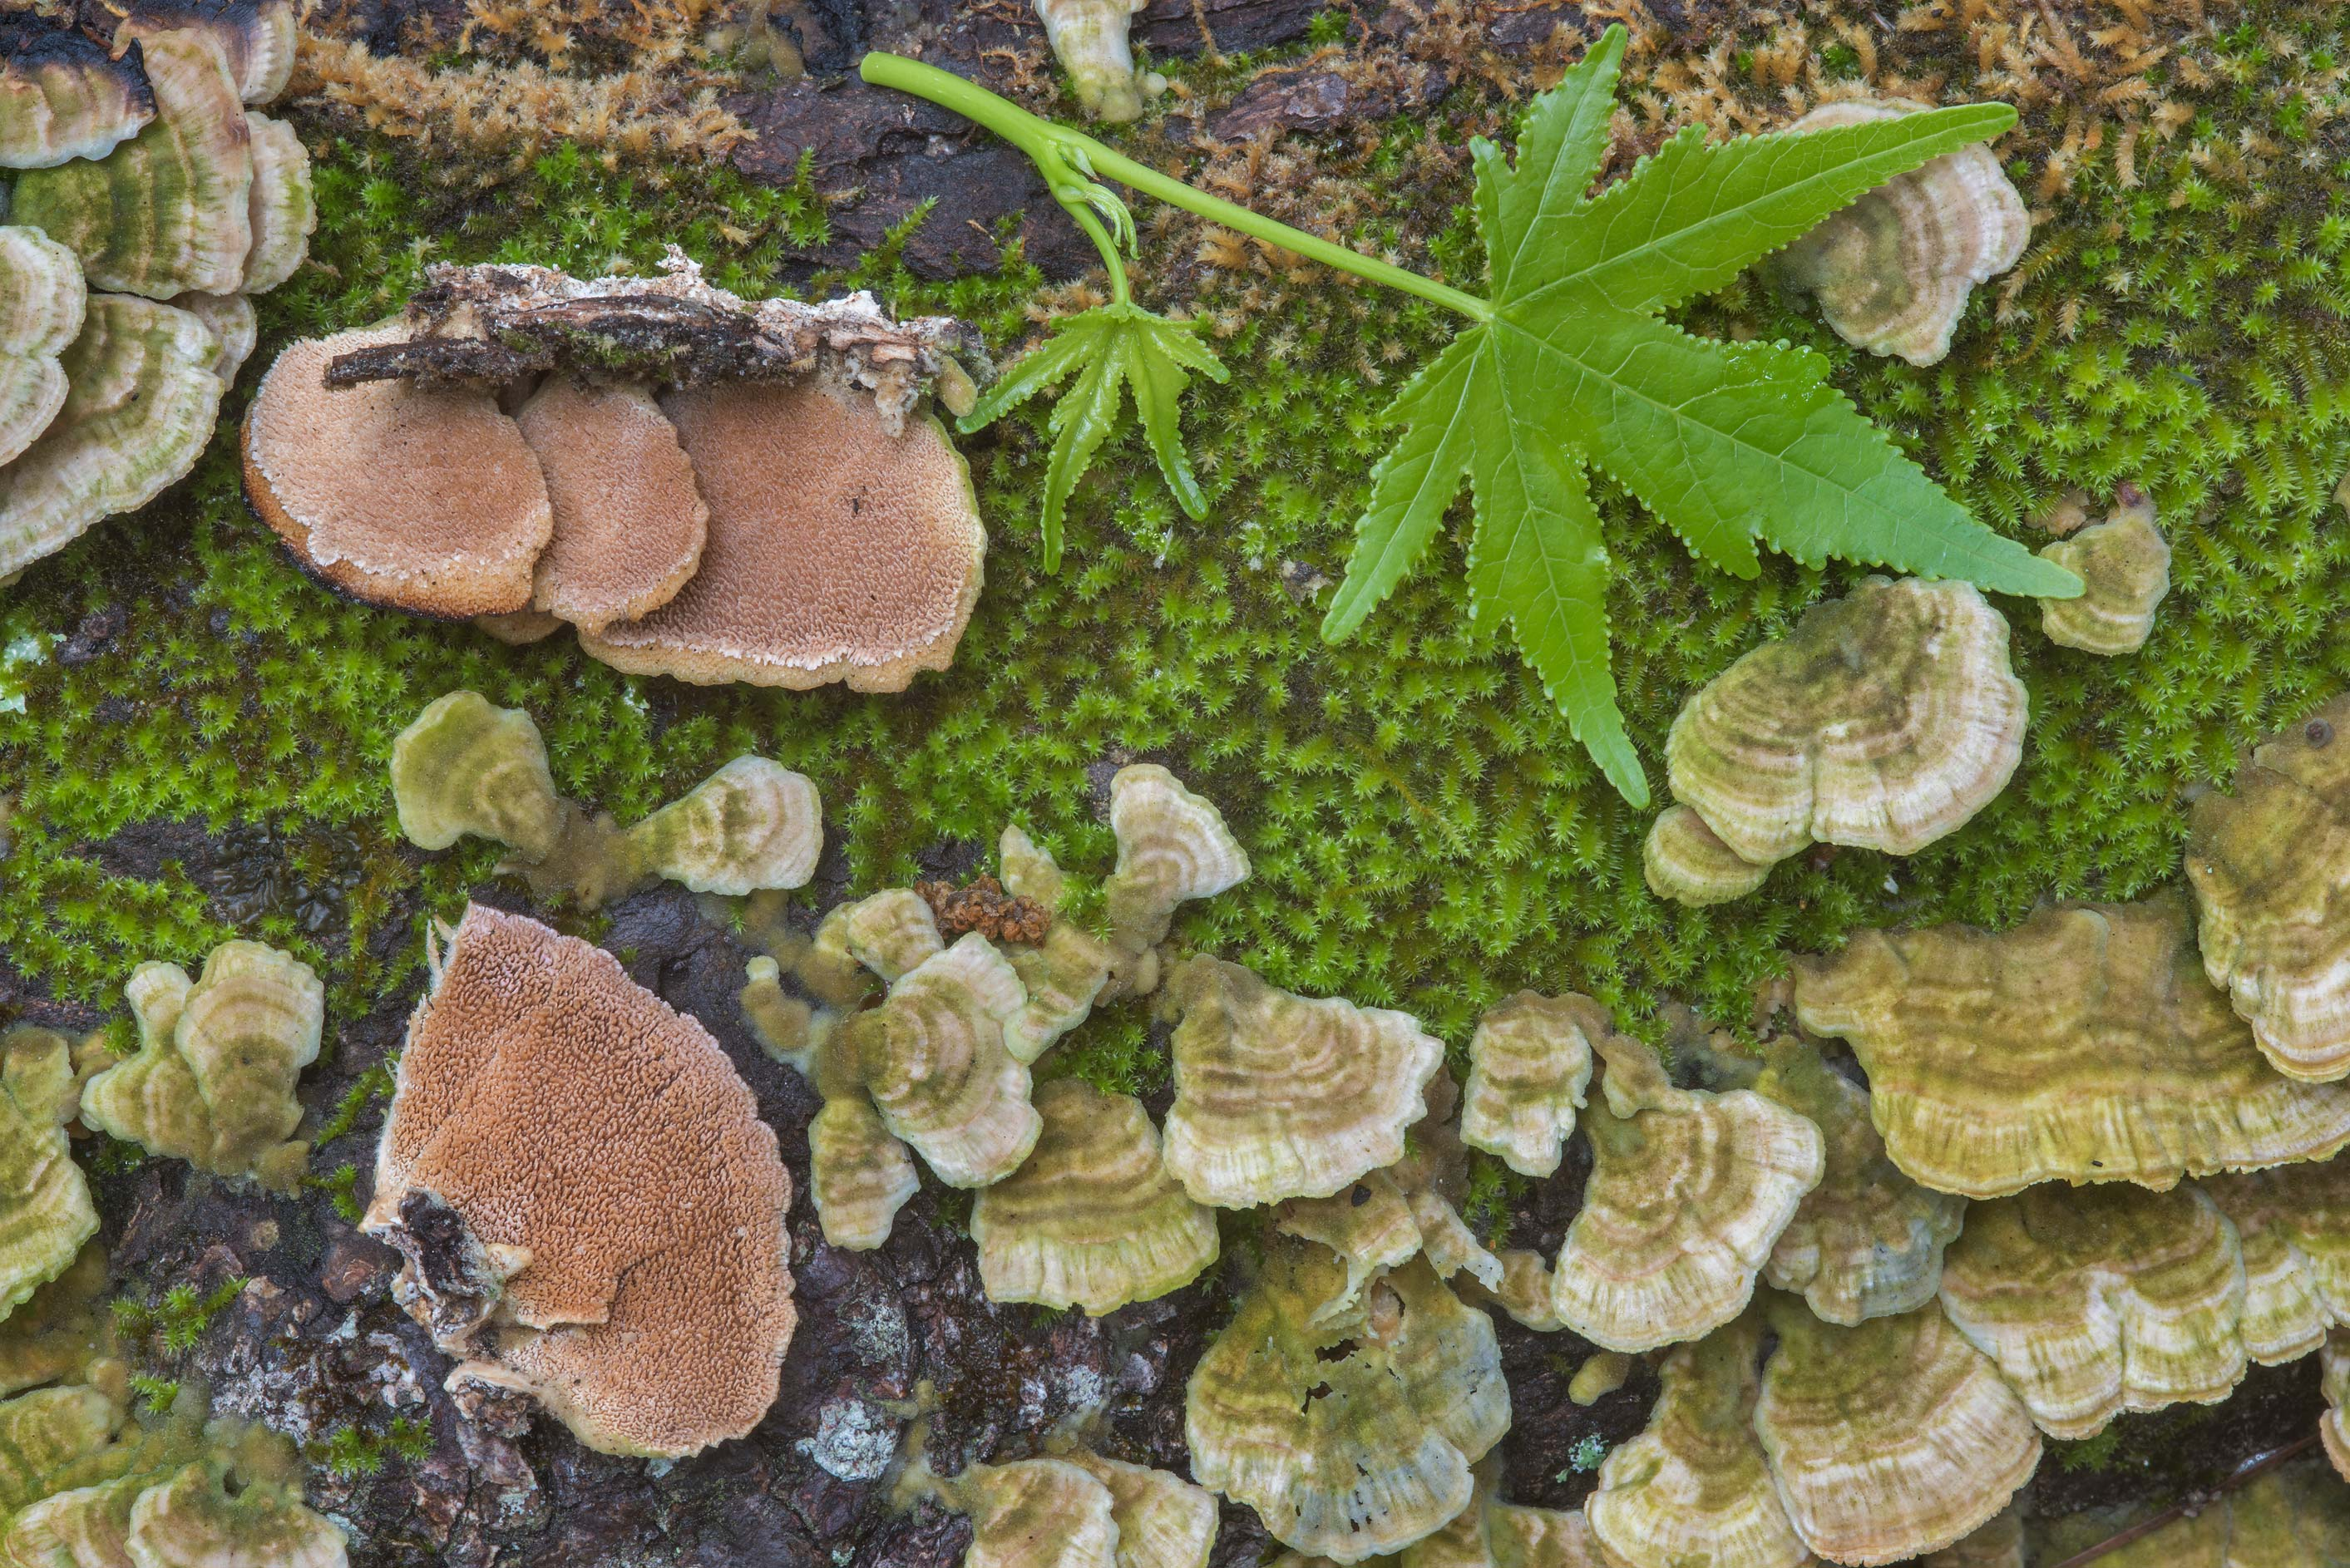 Purple toothed polypore mushrooms (Trichaptum...National Forest near Huntsville, Texas